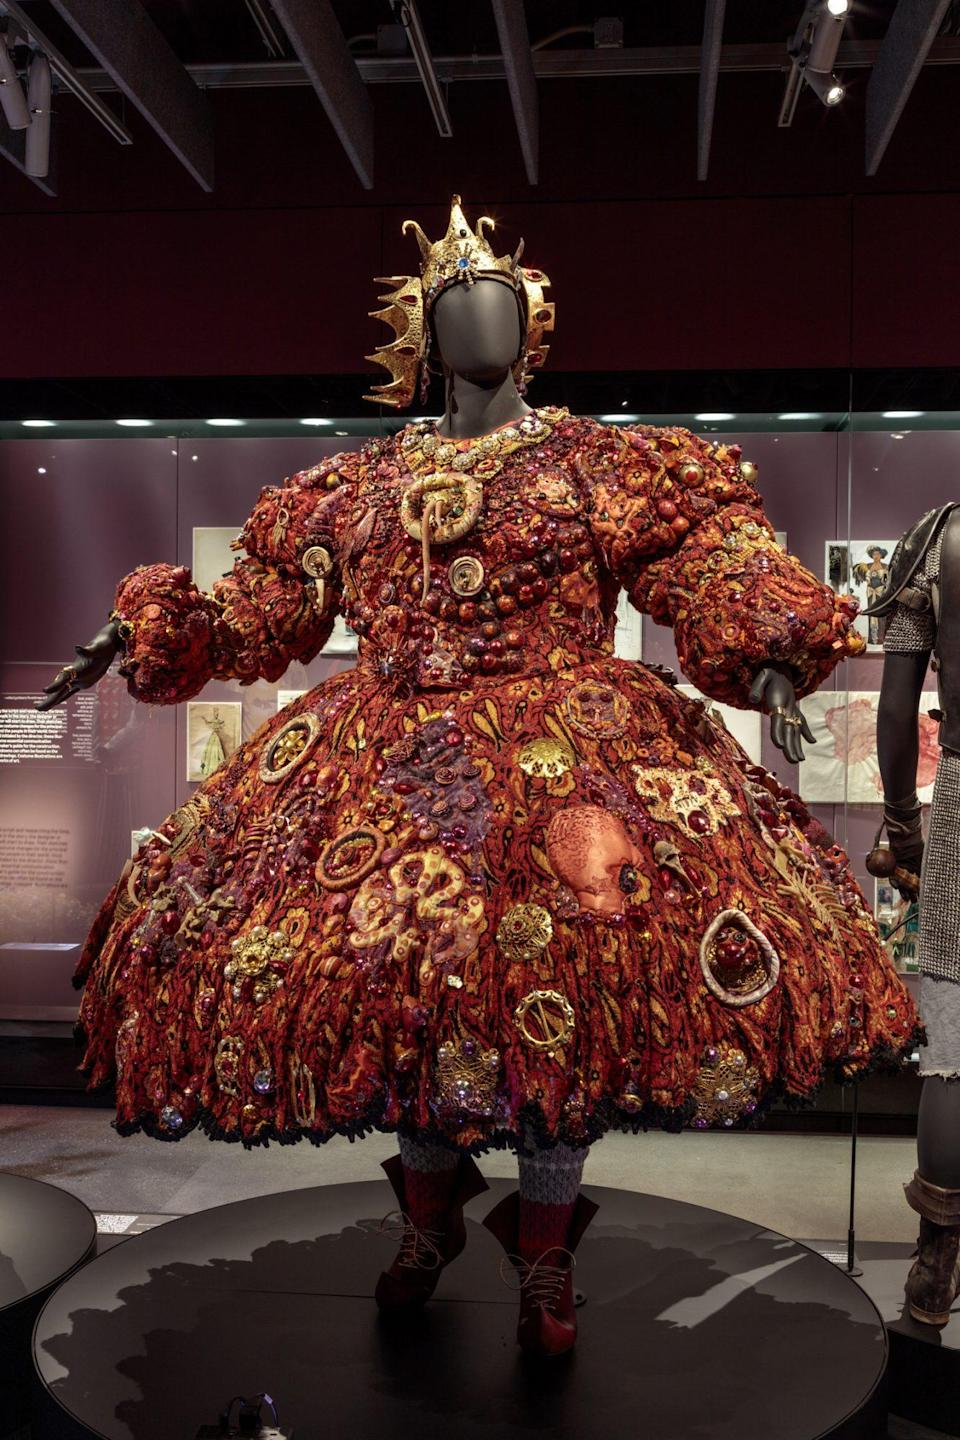 <p>At right, the costume worn by Mabel King as Evillene in <em>The Wiz. </em></p>